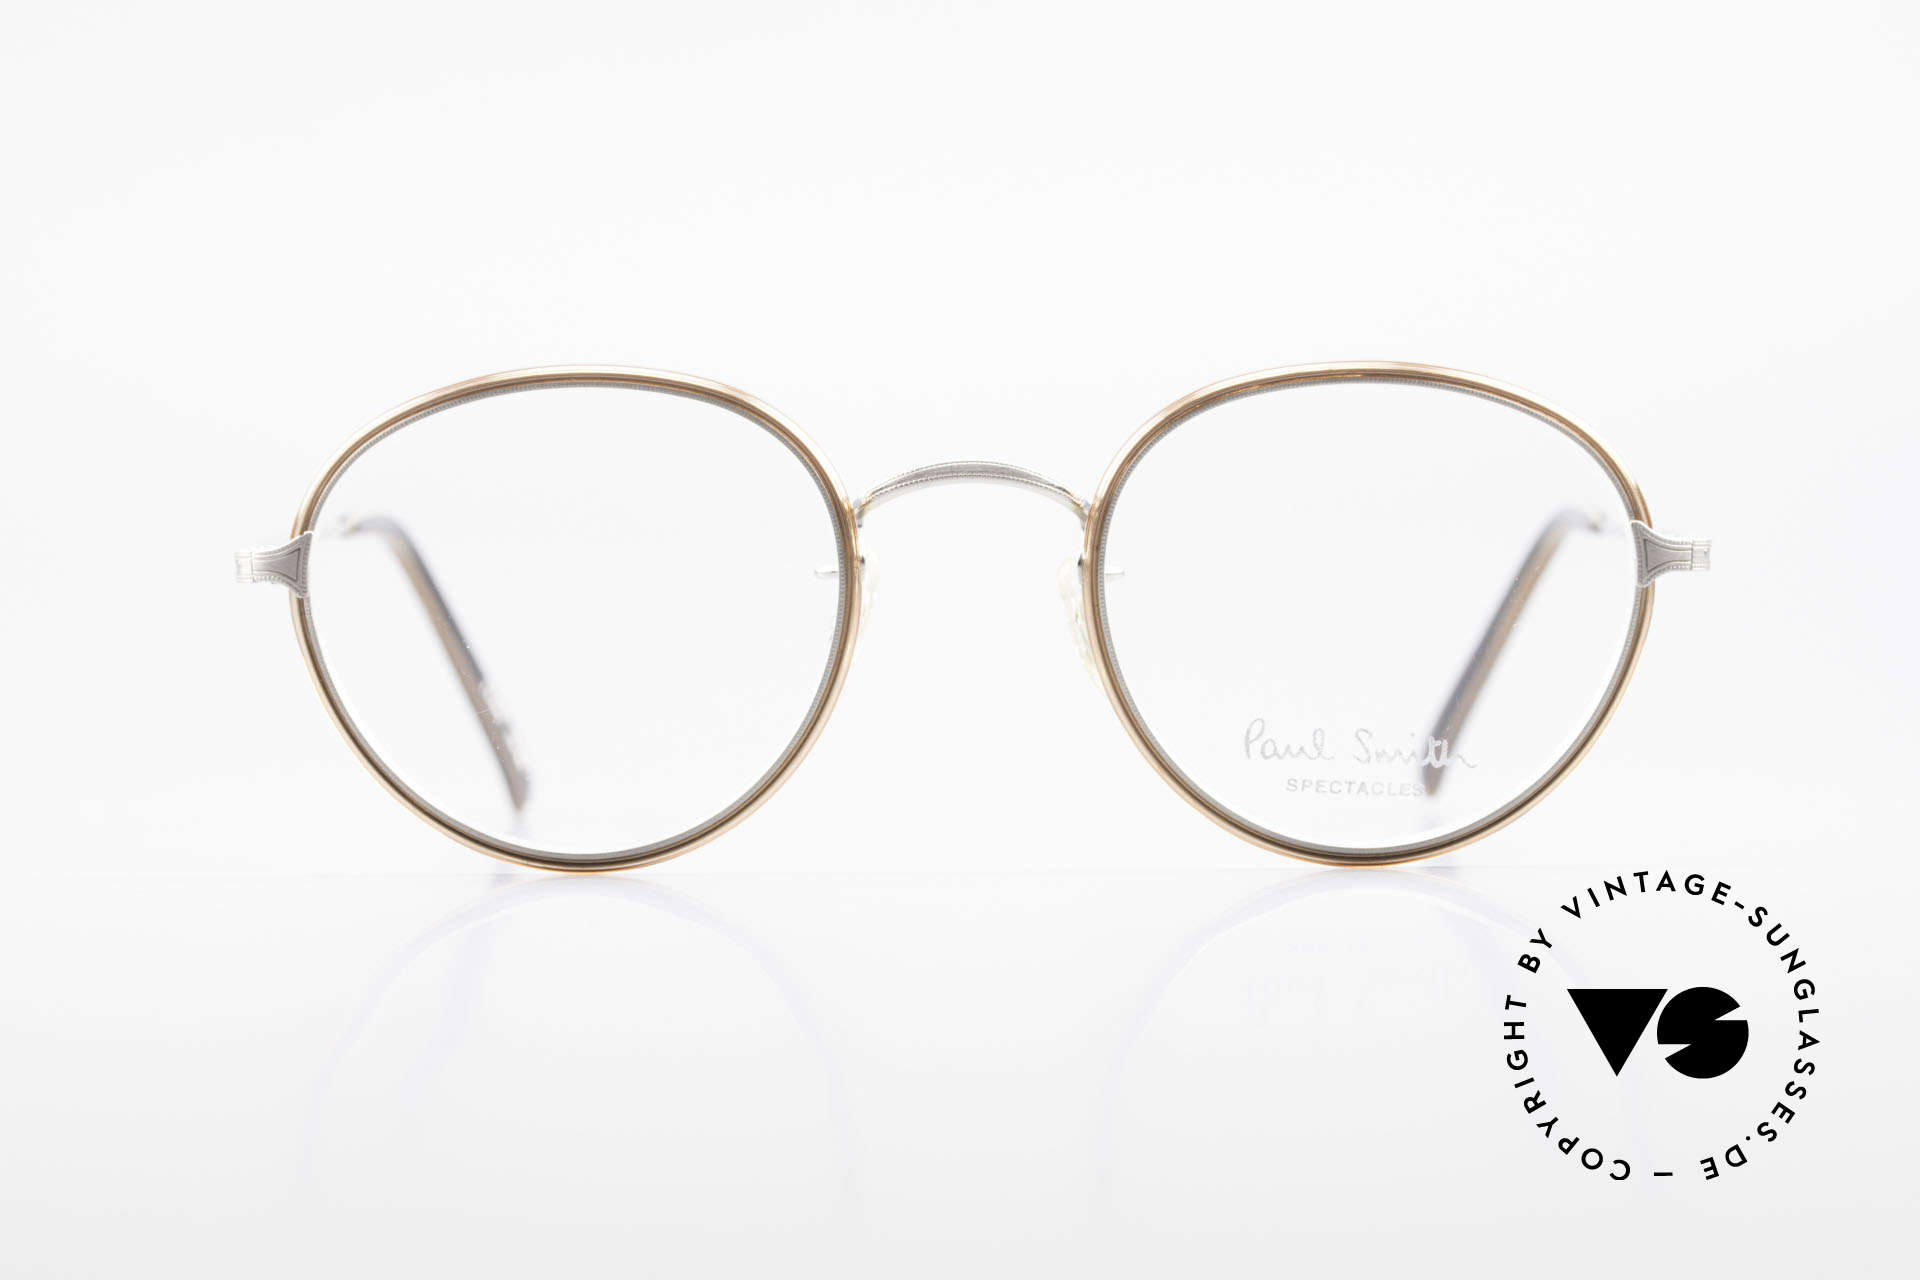 Paul Smith PSR109 Old Panto Frame Made in Japan, the time before PS Spectacles became licensed products, Made for Men